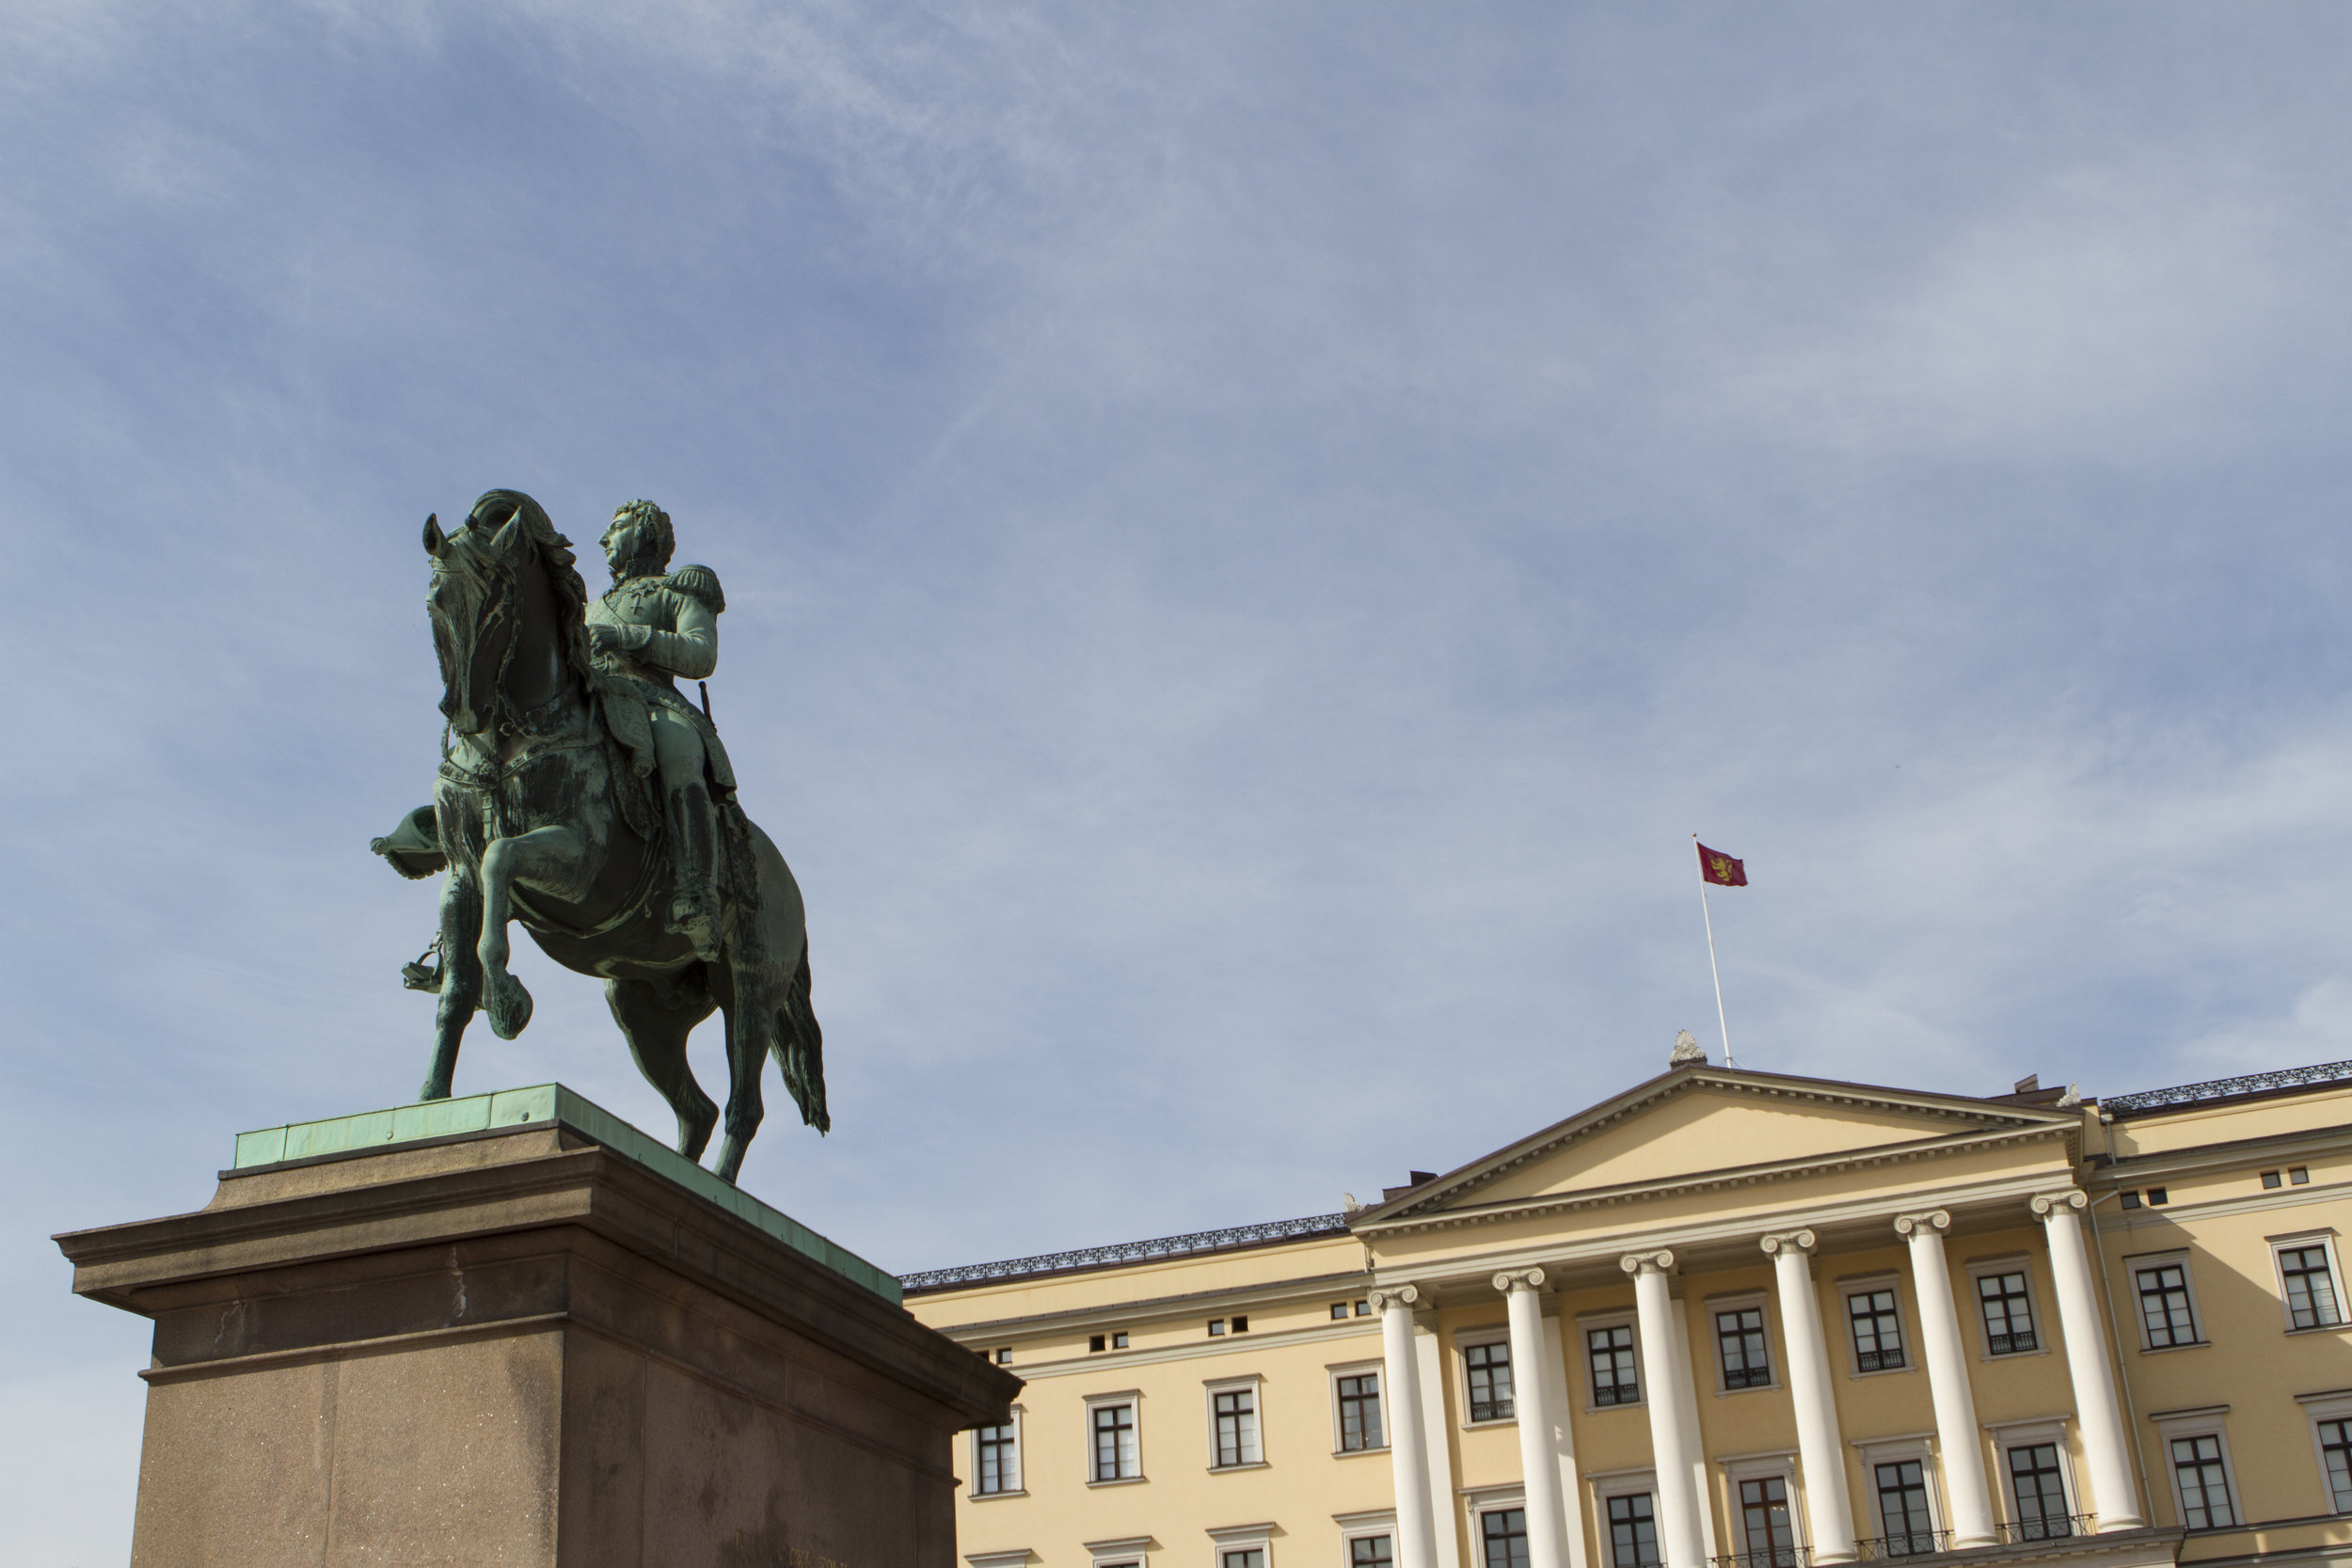 Oslo's Royal Palace